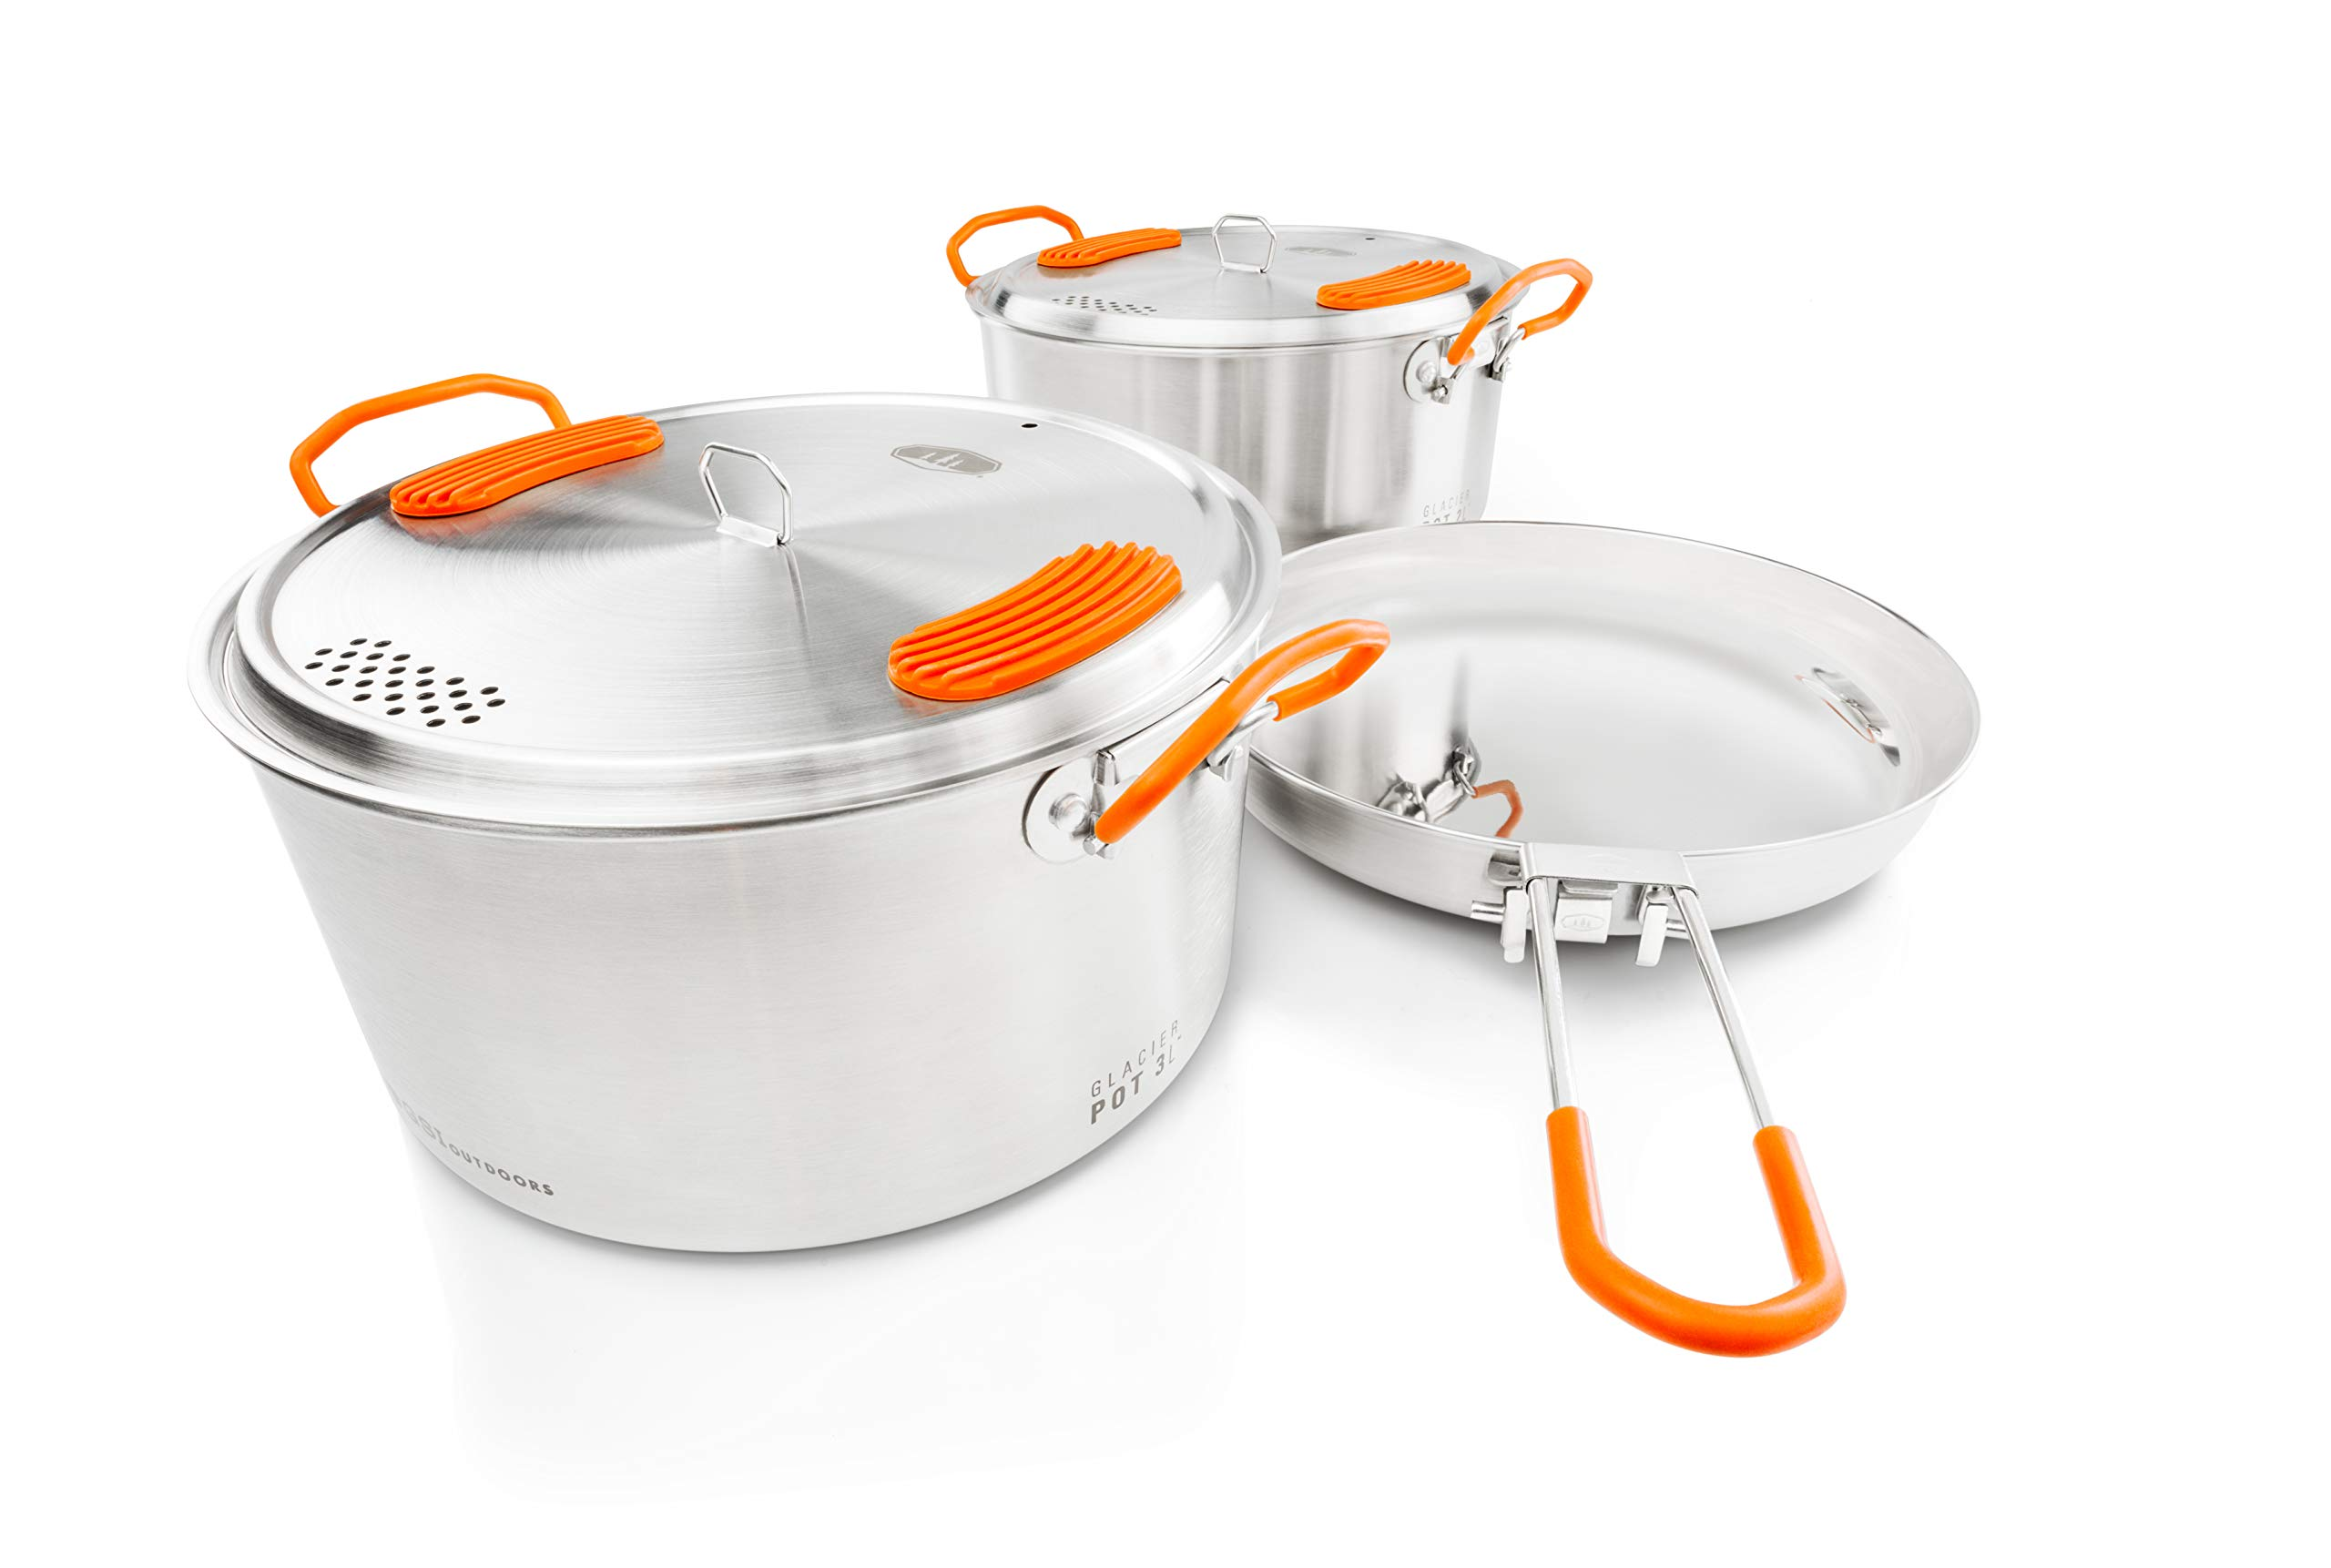 GSI Outdoors Glacier Stainless Steel Base Camper - Medium - 3 Pieces Cookset - Compact, Durable Pot Pan for Camping by GSI Outdoors